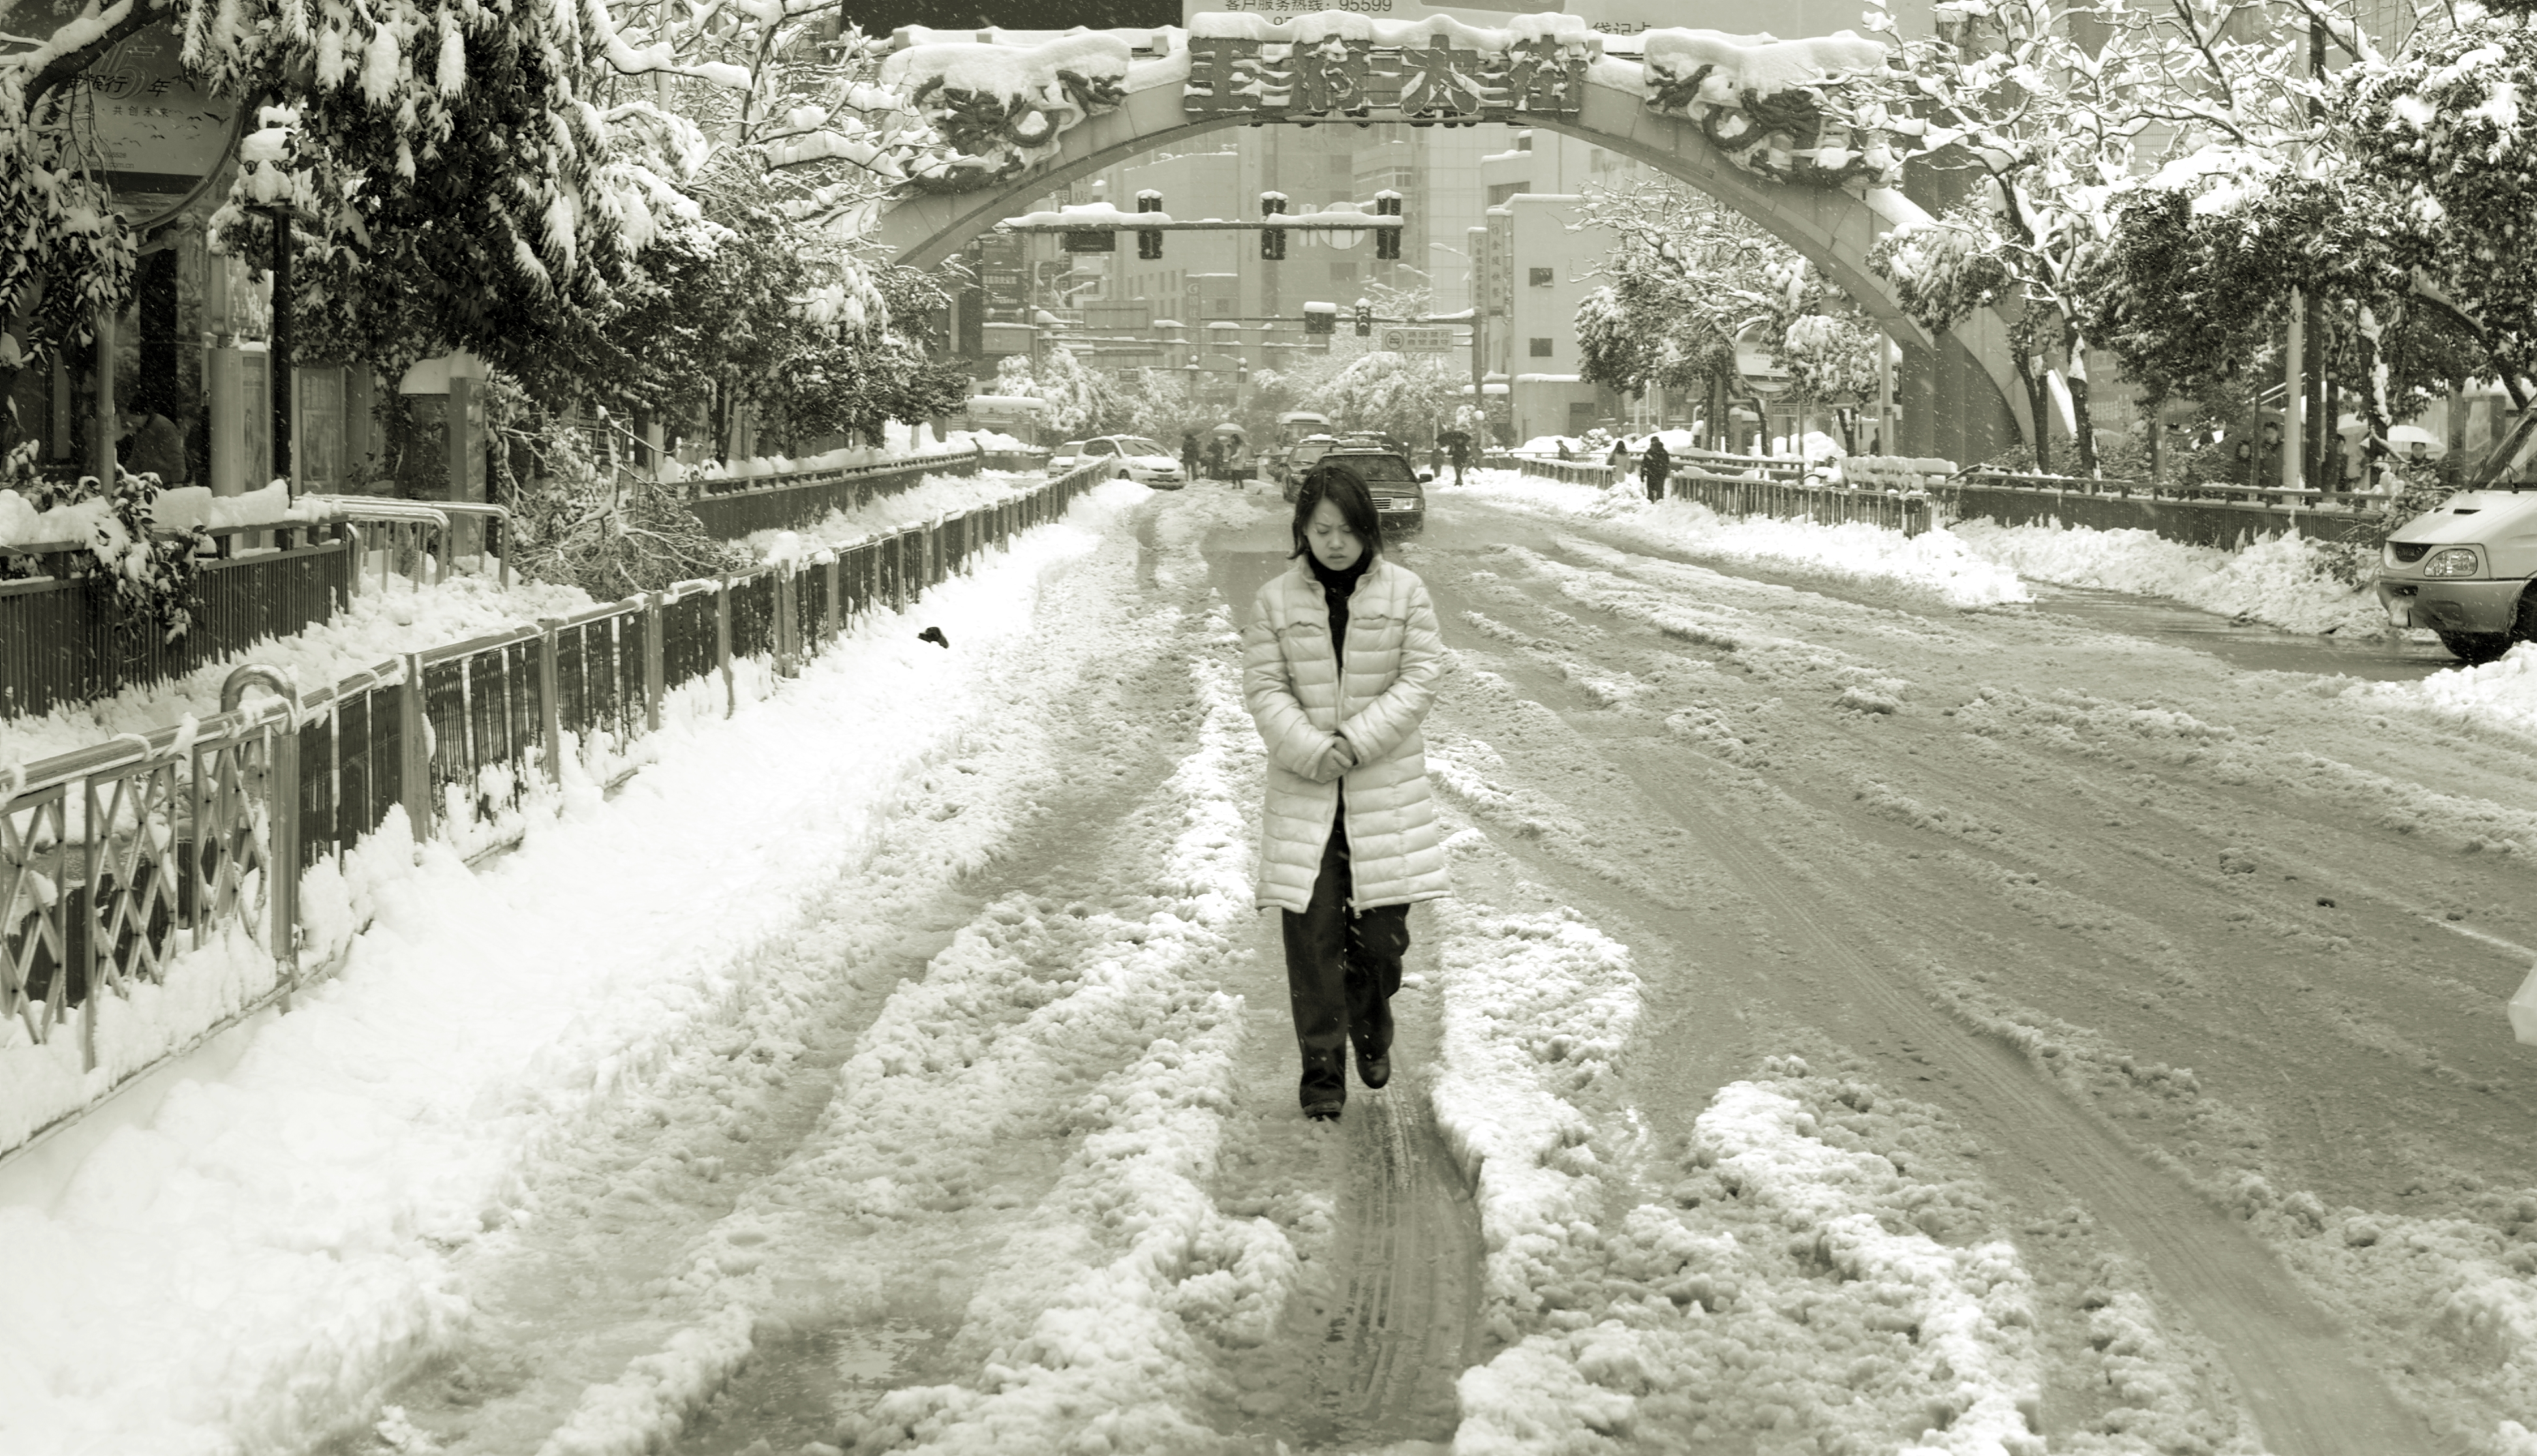 walking in the snow - photo #39